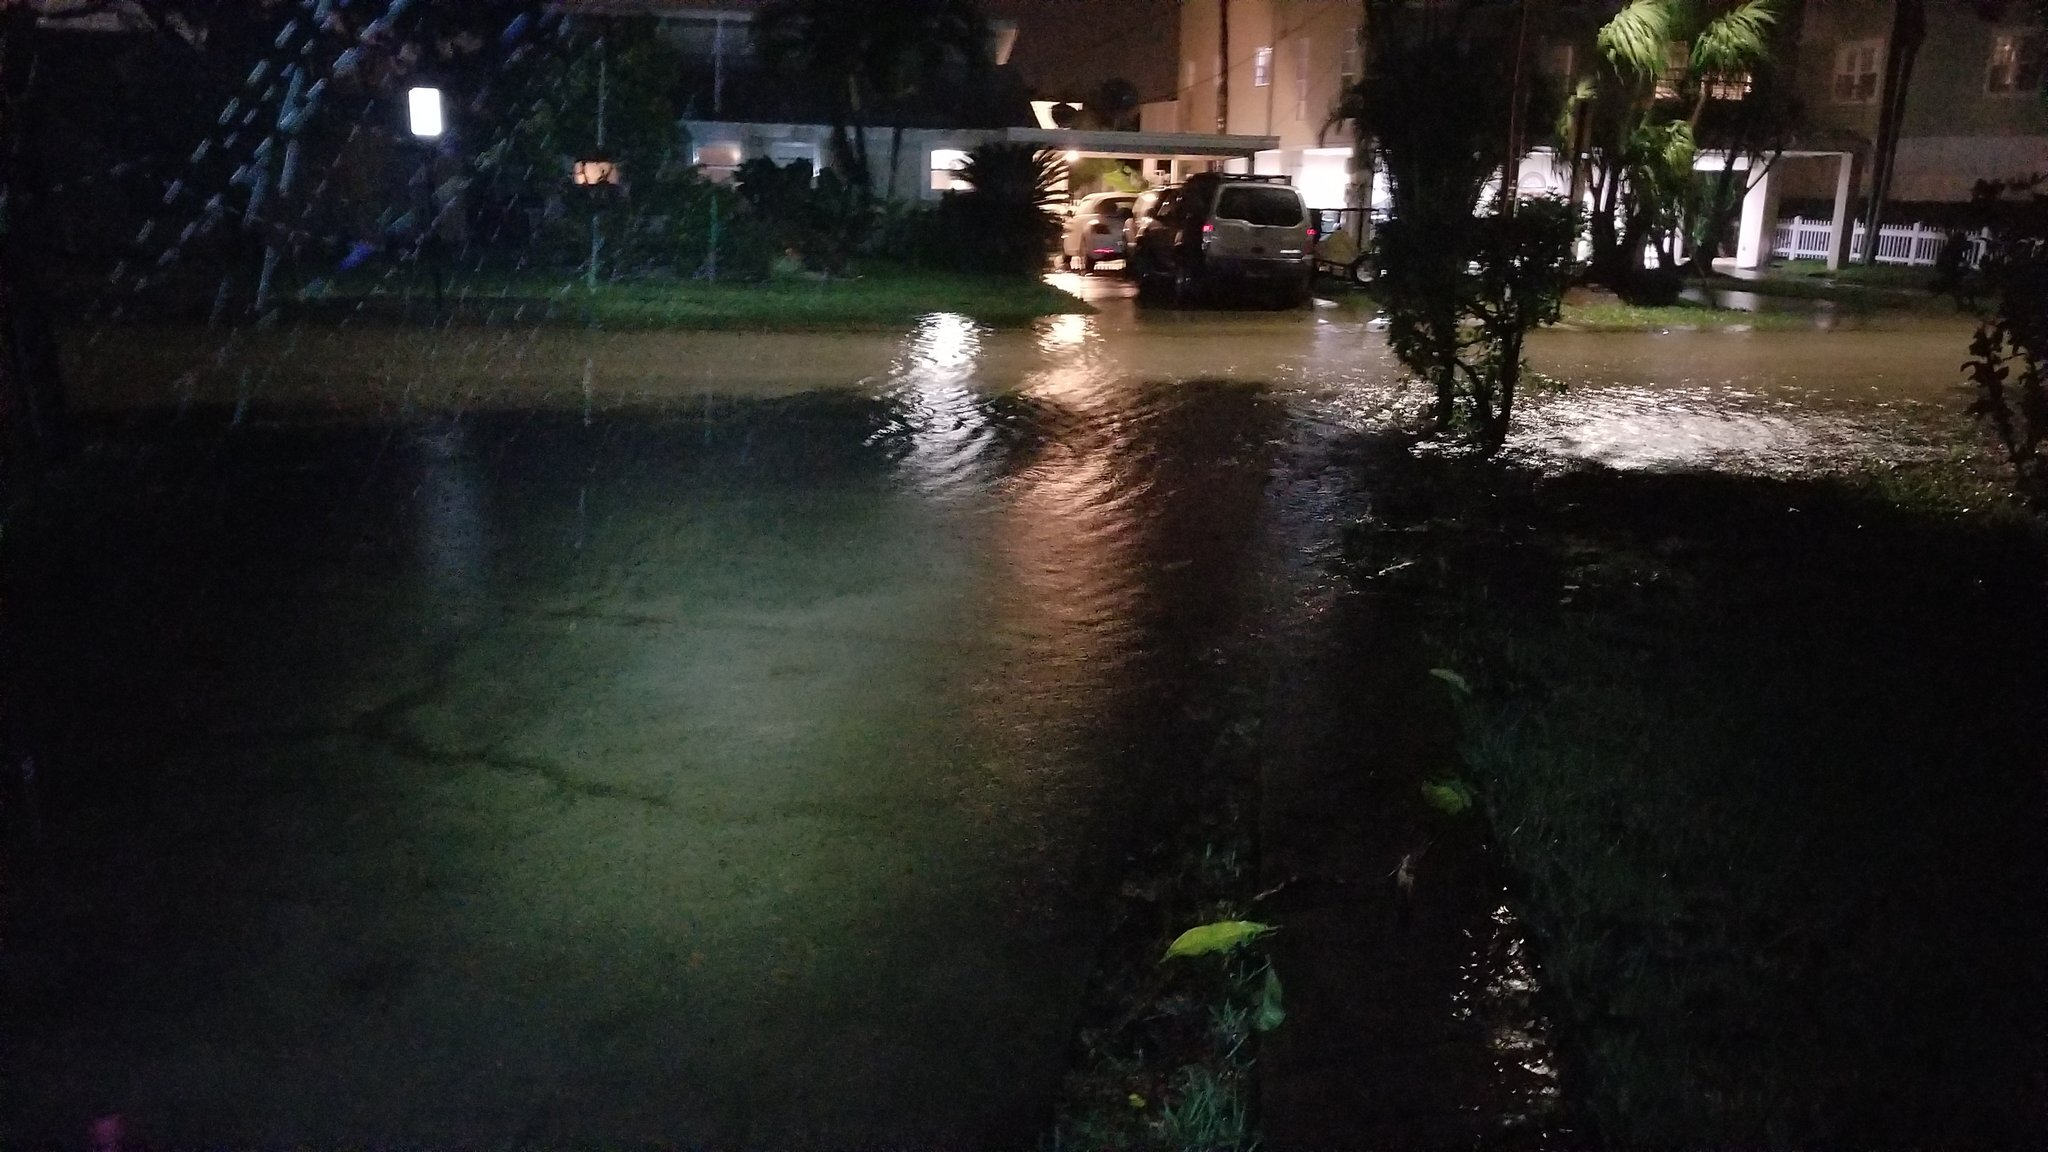 18th Ave in Indian Rocks Beach_Bruce Sobut.jpg